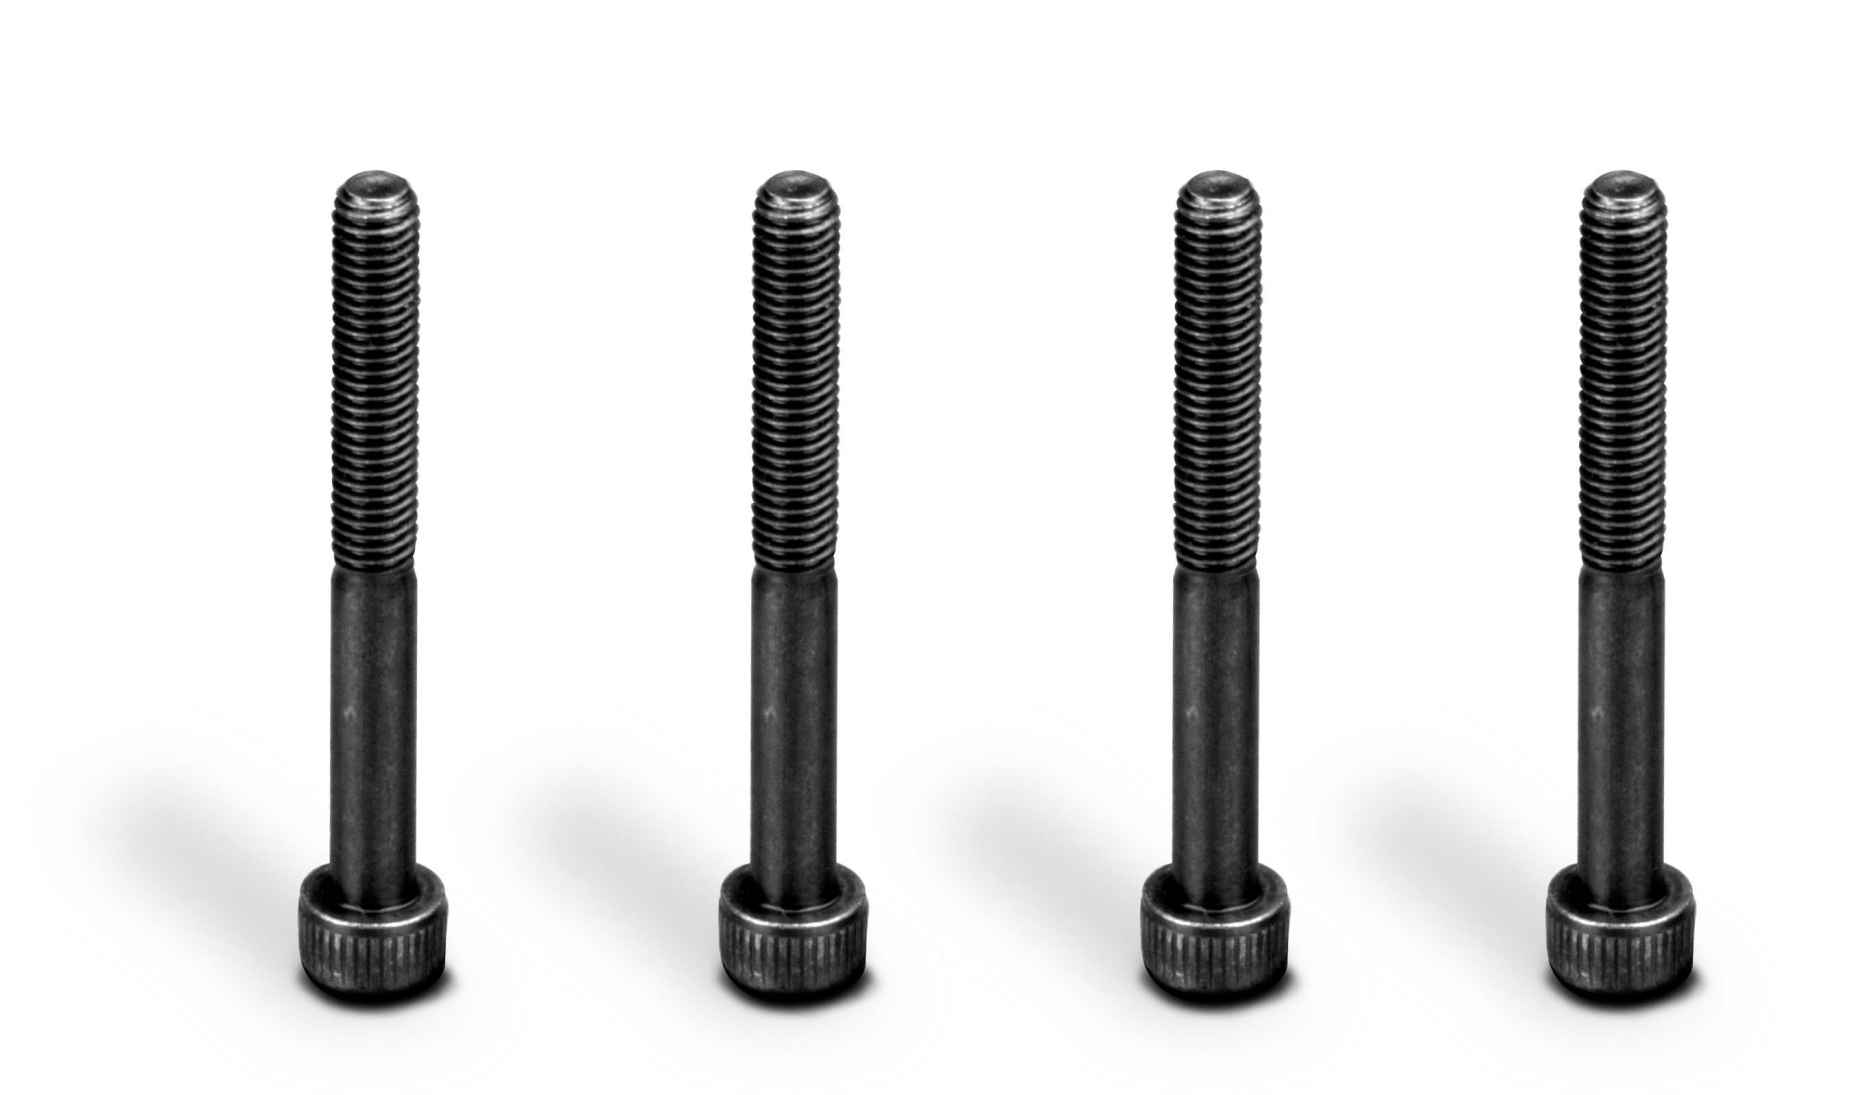 cetop 3 ng6 bolt kit